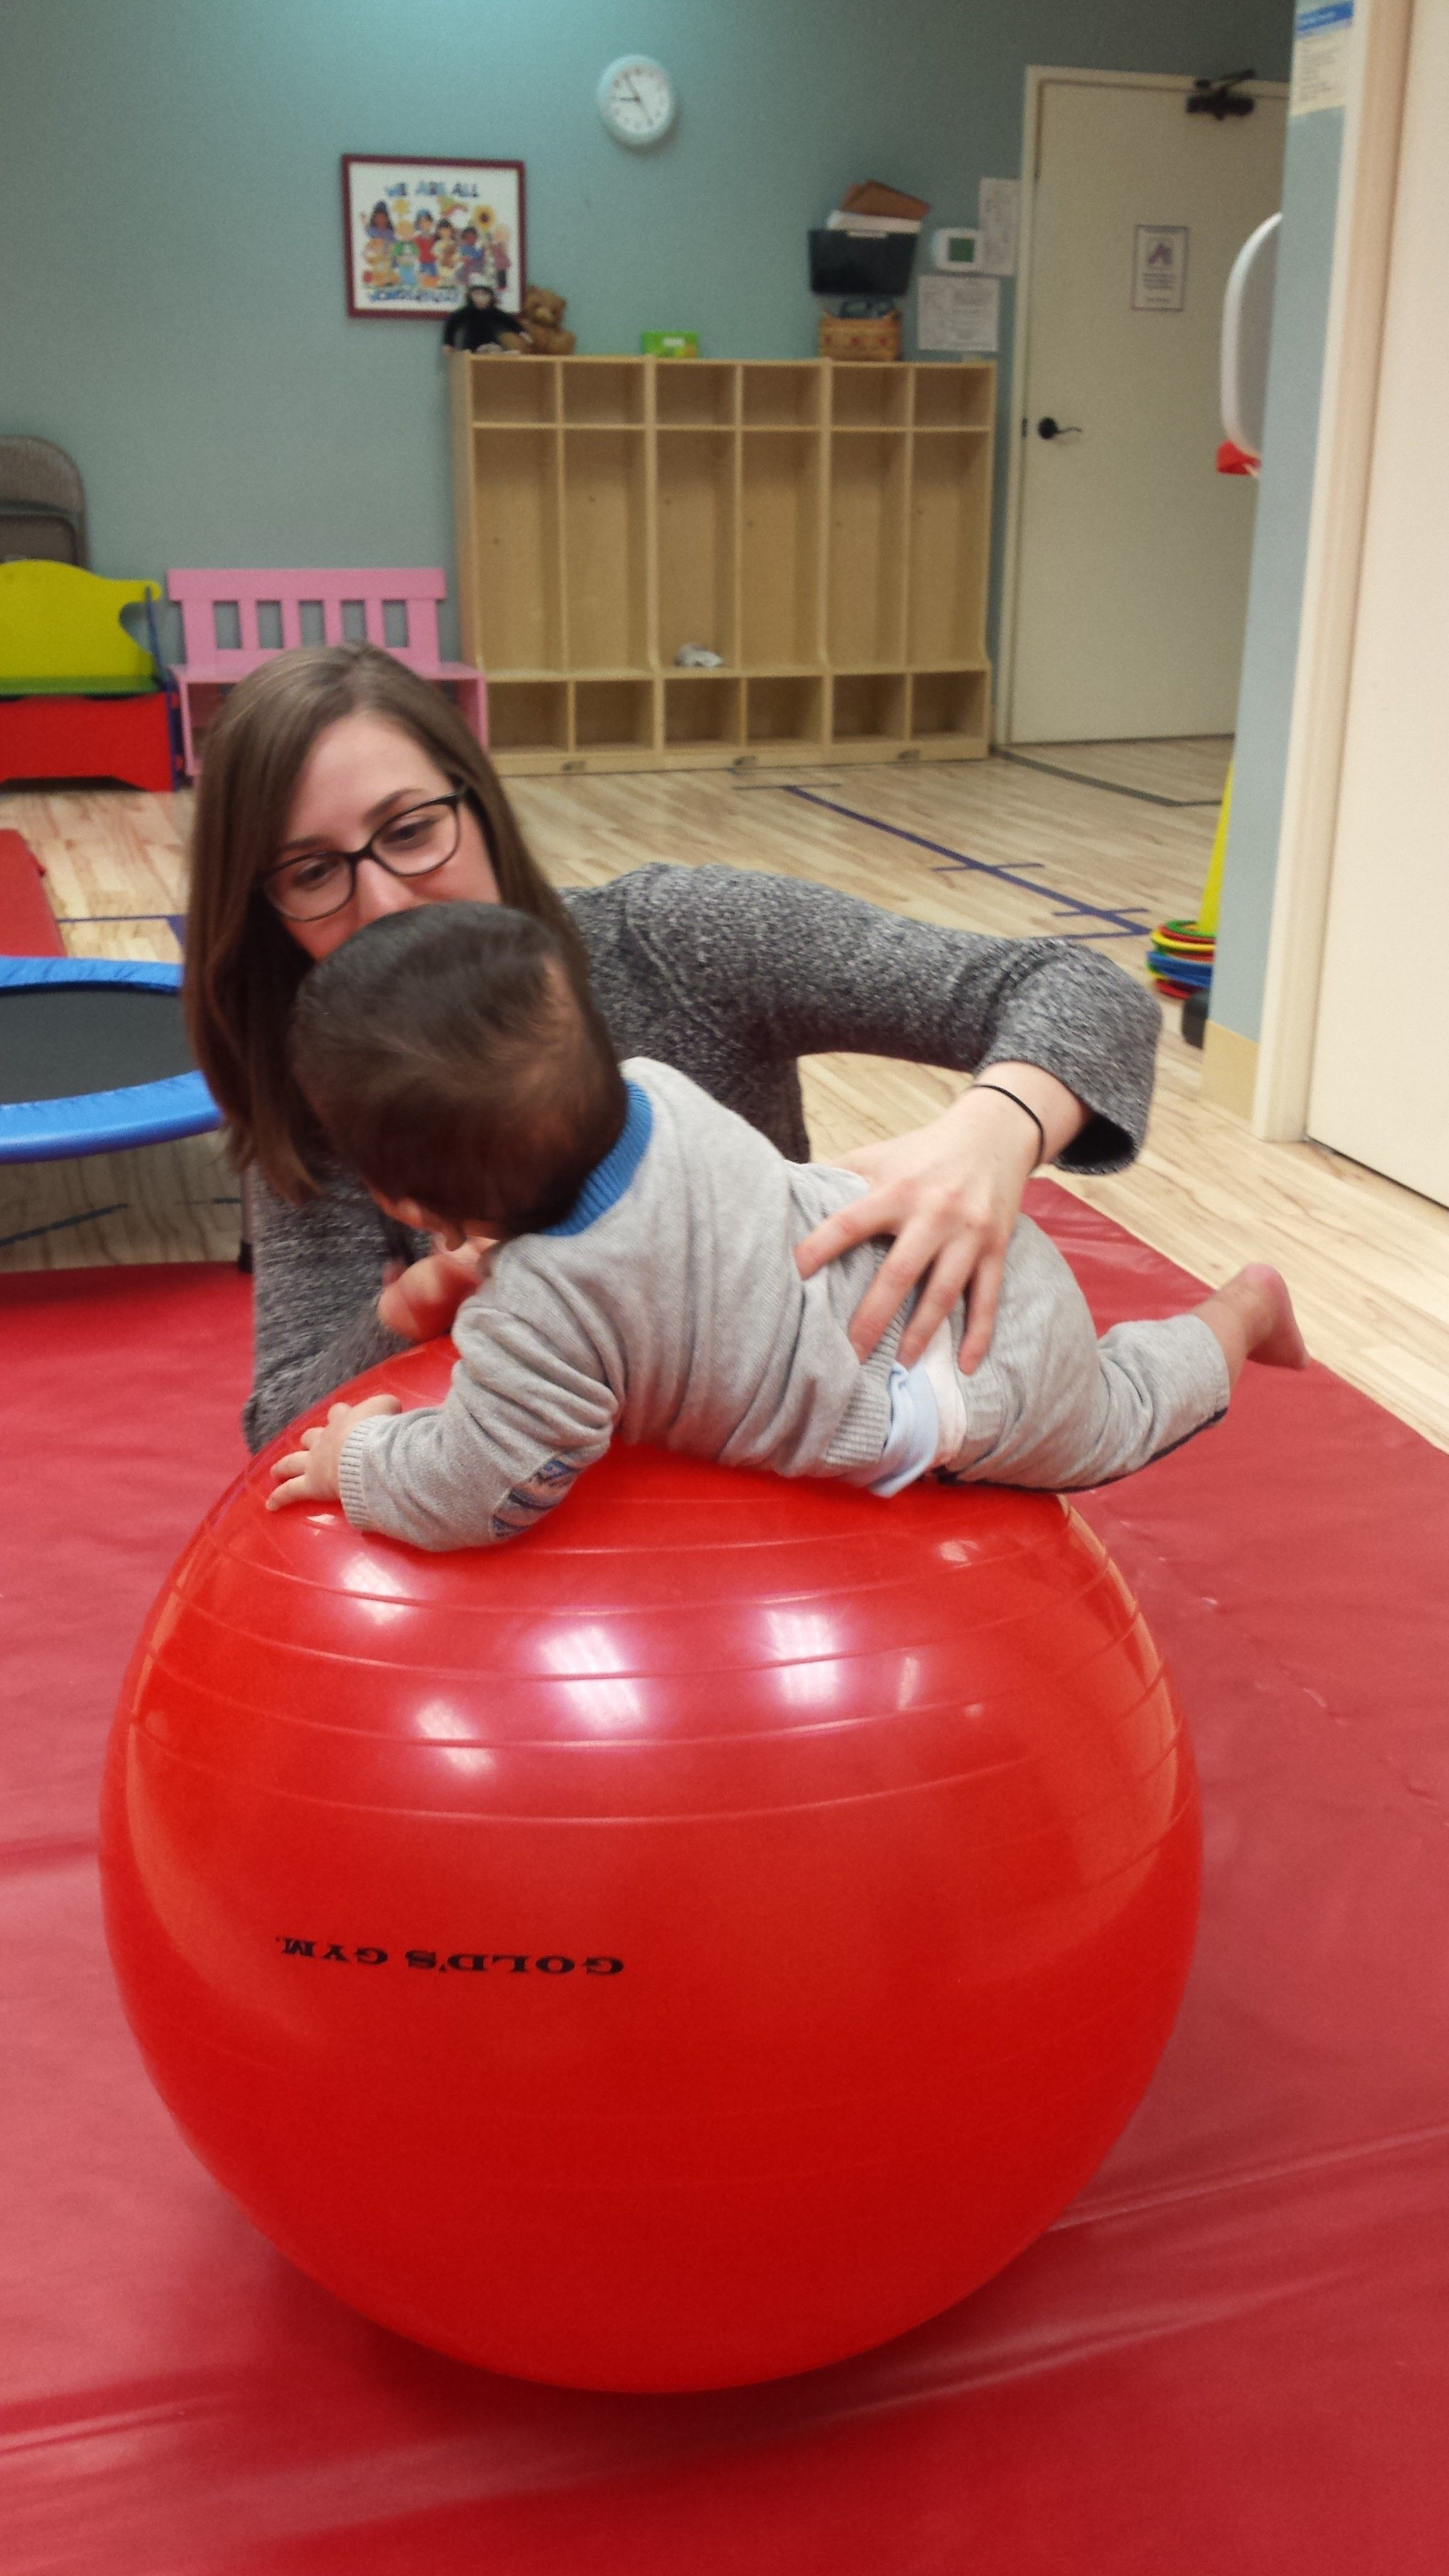 Physical Therapy For Infant Developmental And Torticollis Treatment Often Includes Playtime On A